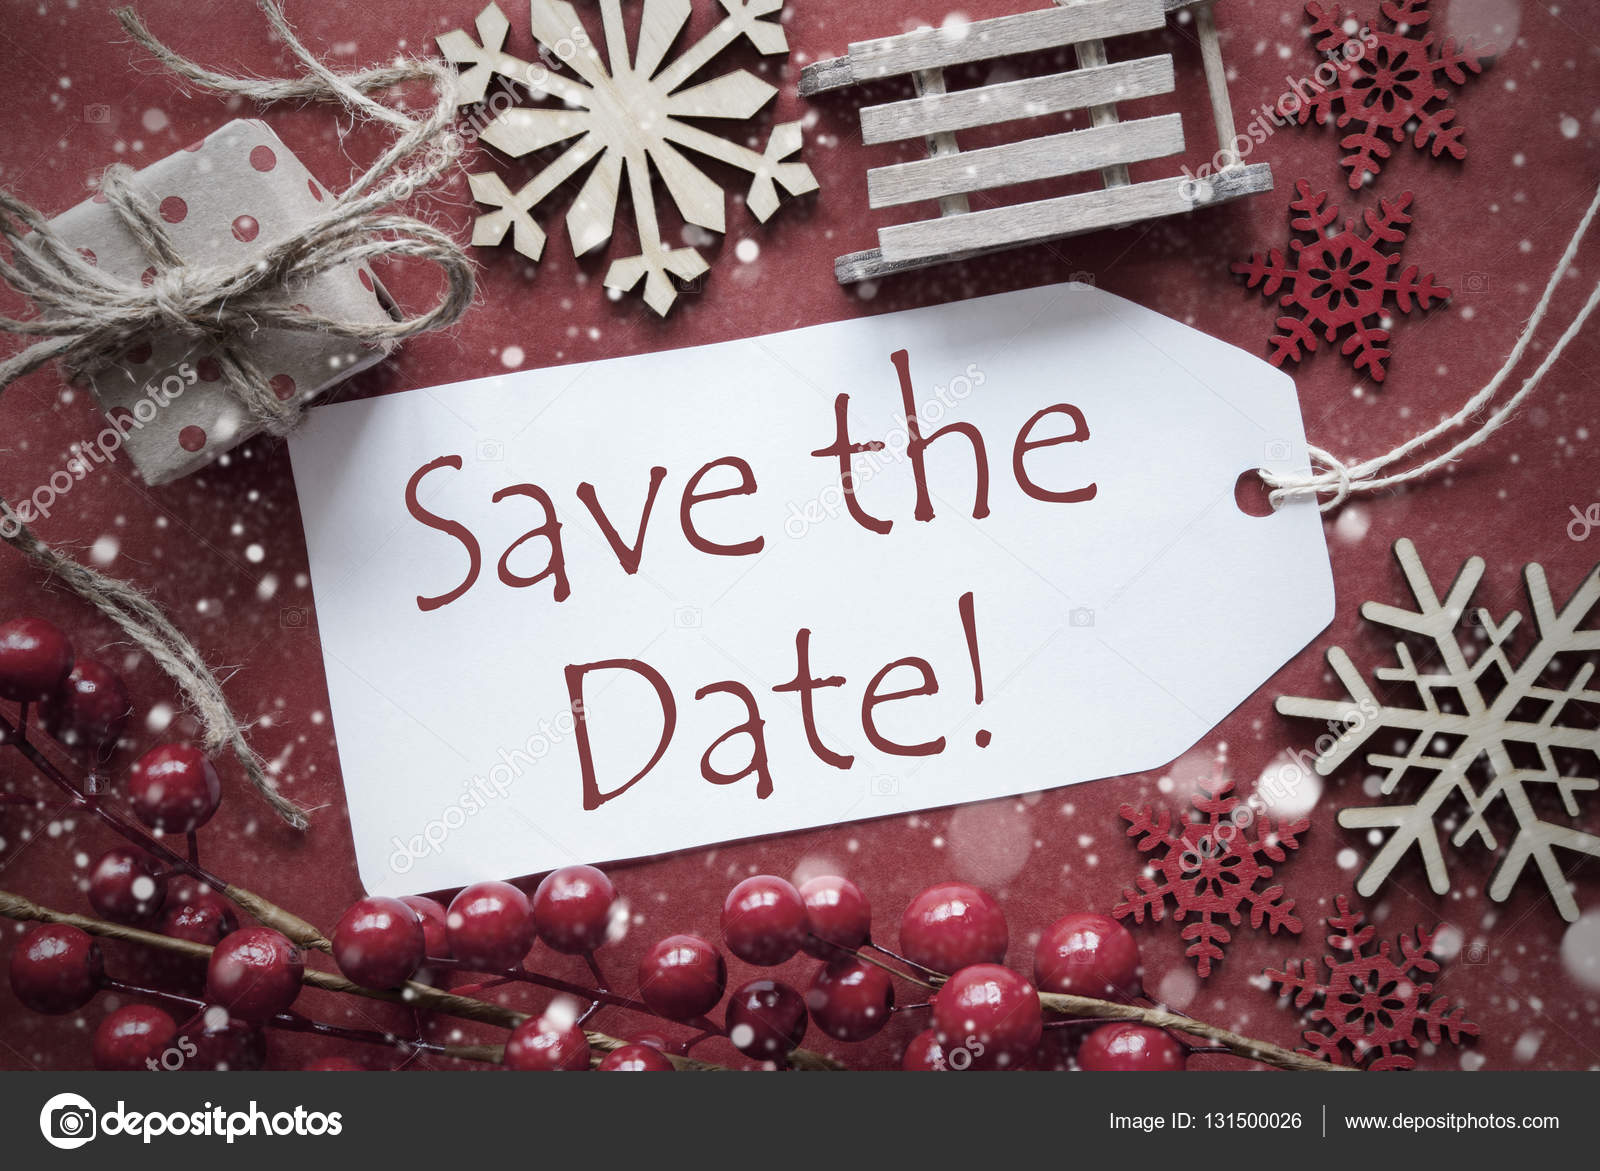 Christmas Save The Date Graphics.Nostalgic Christmas Decoration Label With English Text Save